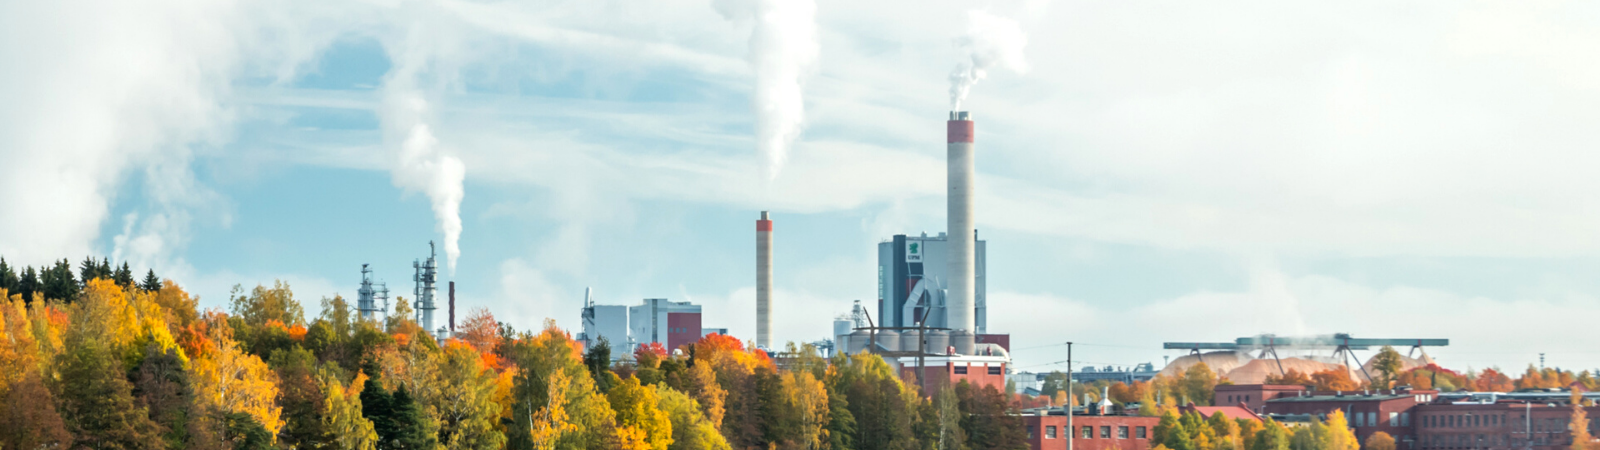 Forrest skyline with a large factory protruding above the tree-line, emitting white carbon filled smoke to represent greenhouse gasses